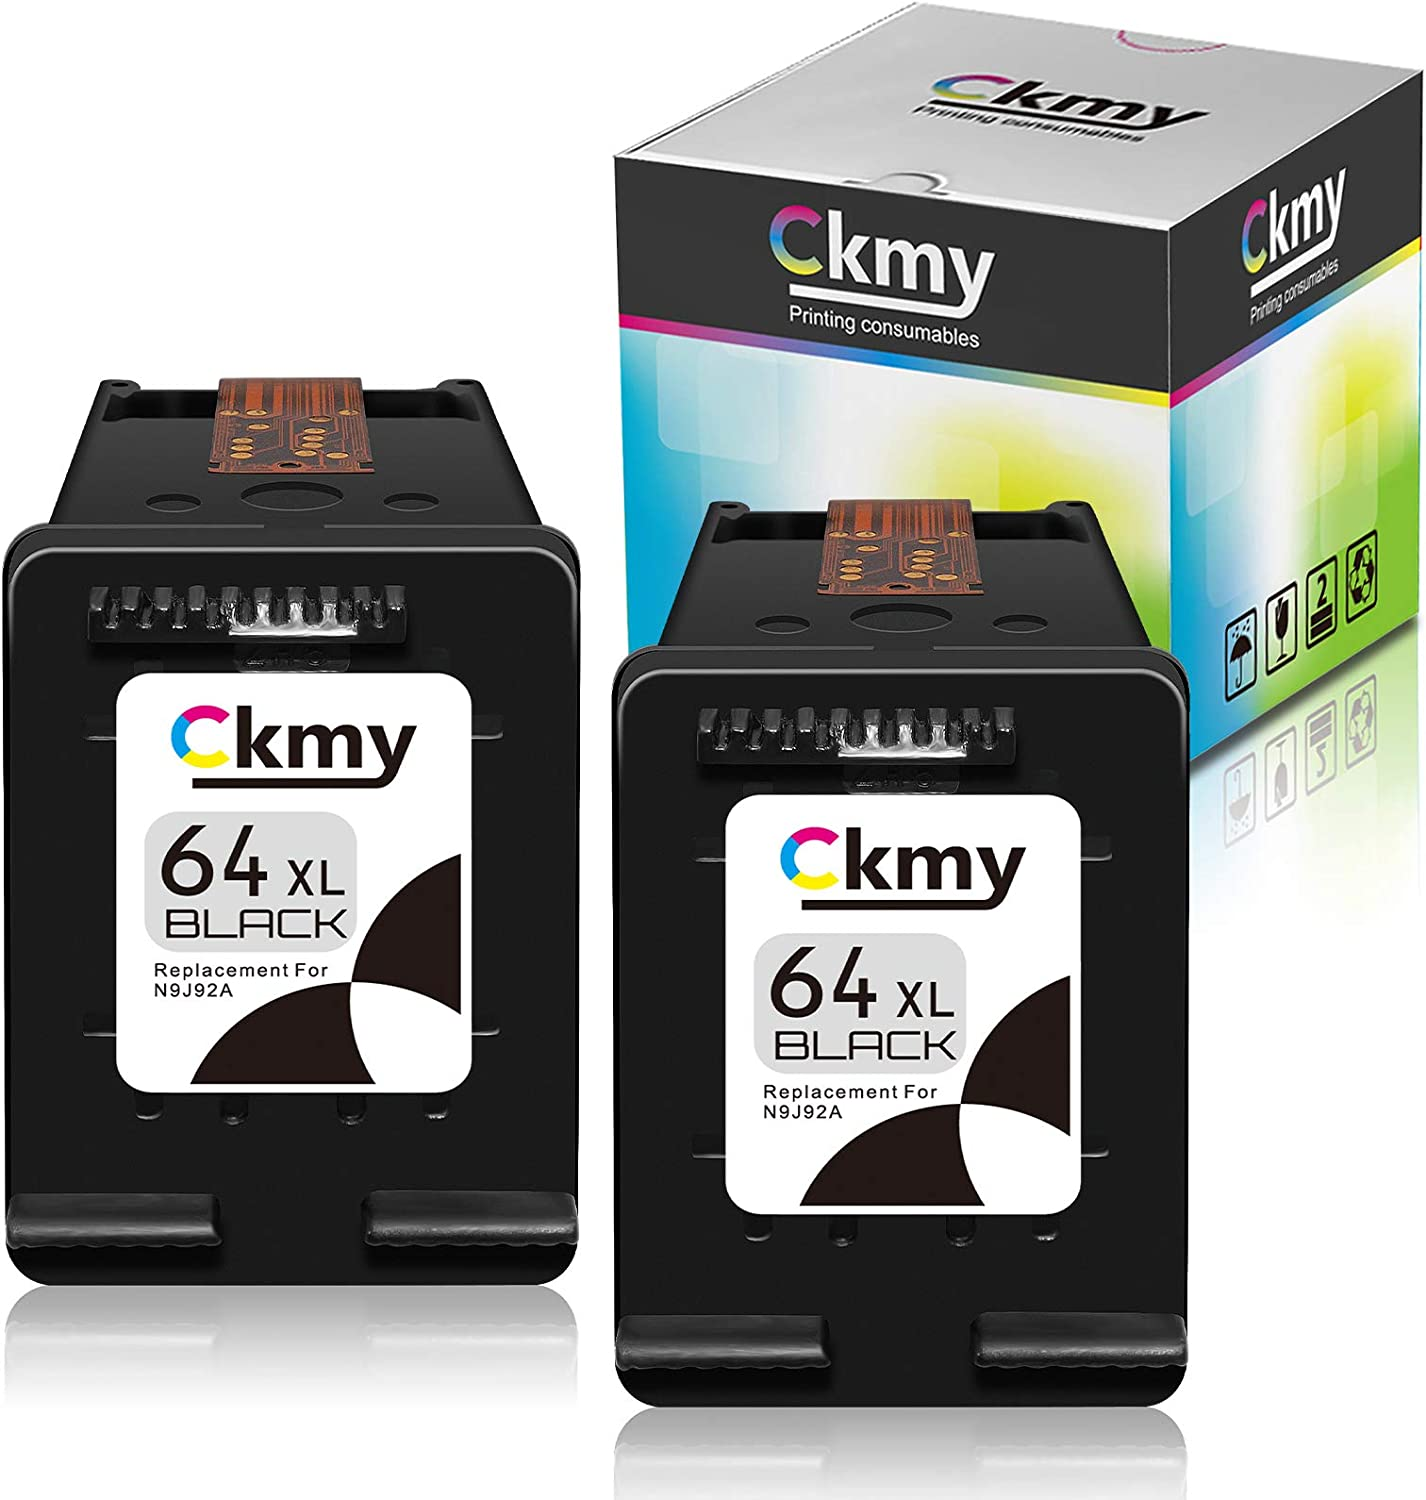 CKMY Remanufactured Ink Cartridge Replacement for HP 64XL 64 XL (2 Black) Use with Envy Photo 7800 7858 7155 7855 6255 6252 7158 7164 6222 7120 7130 Tango X Smart Home Wireless Printer